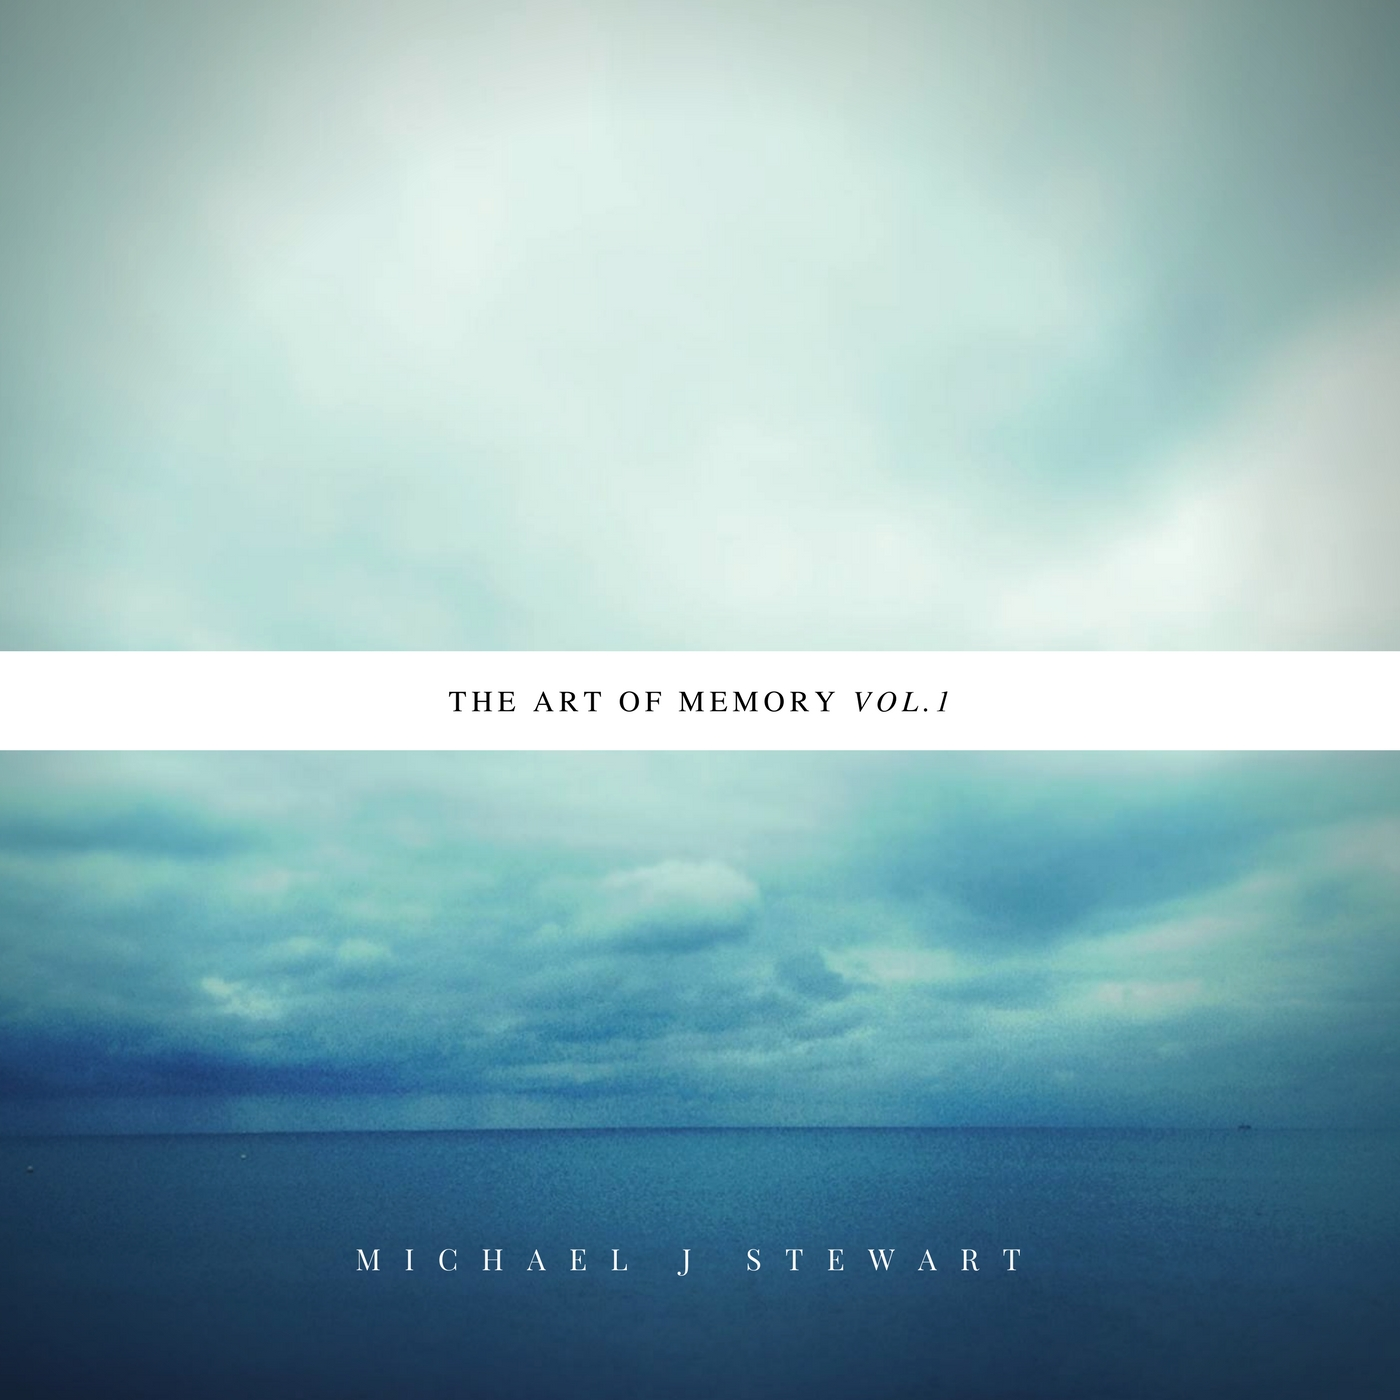 The Art of Memory Vol 1